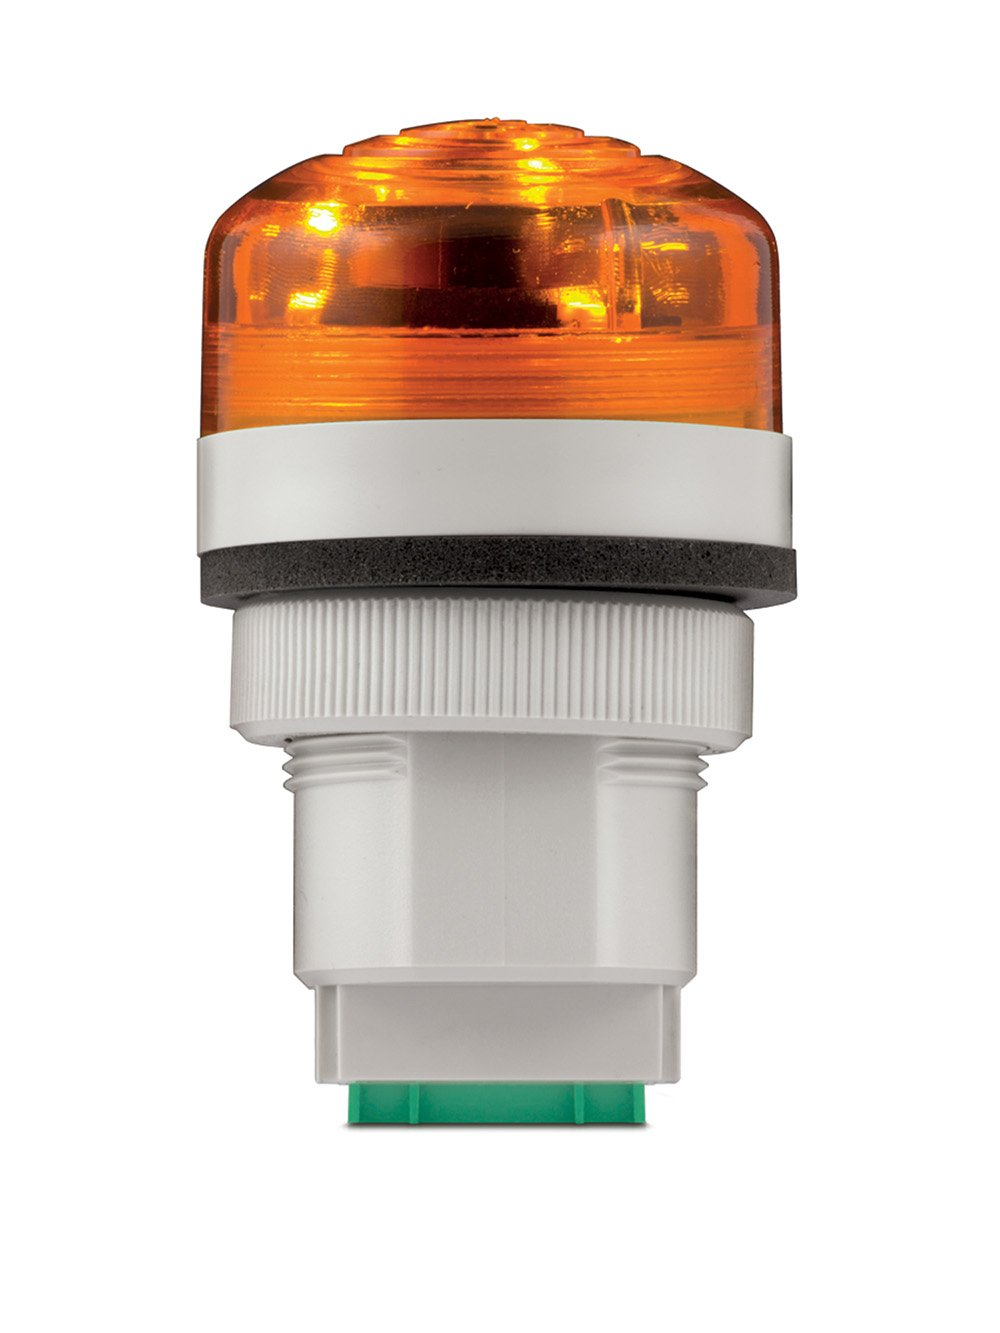 Federal Signal PMC Panel Mount Multifunctional Audible & LED Visual Combination Sounder, 48-240VAC, Amber